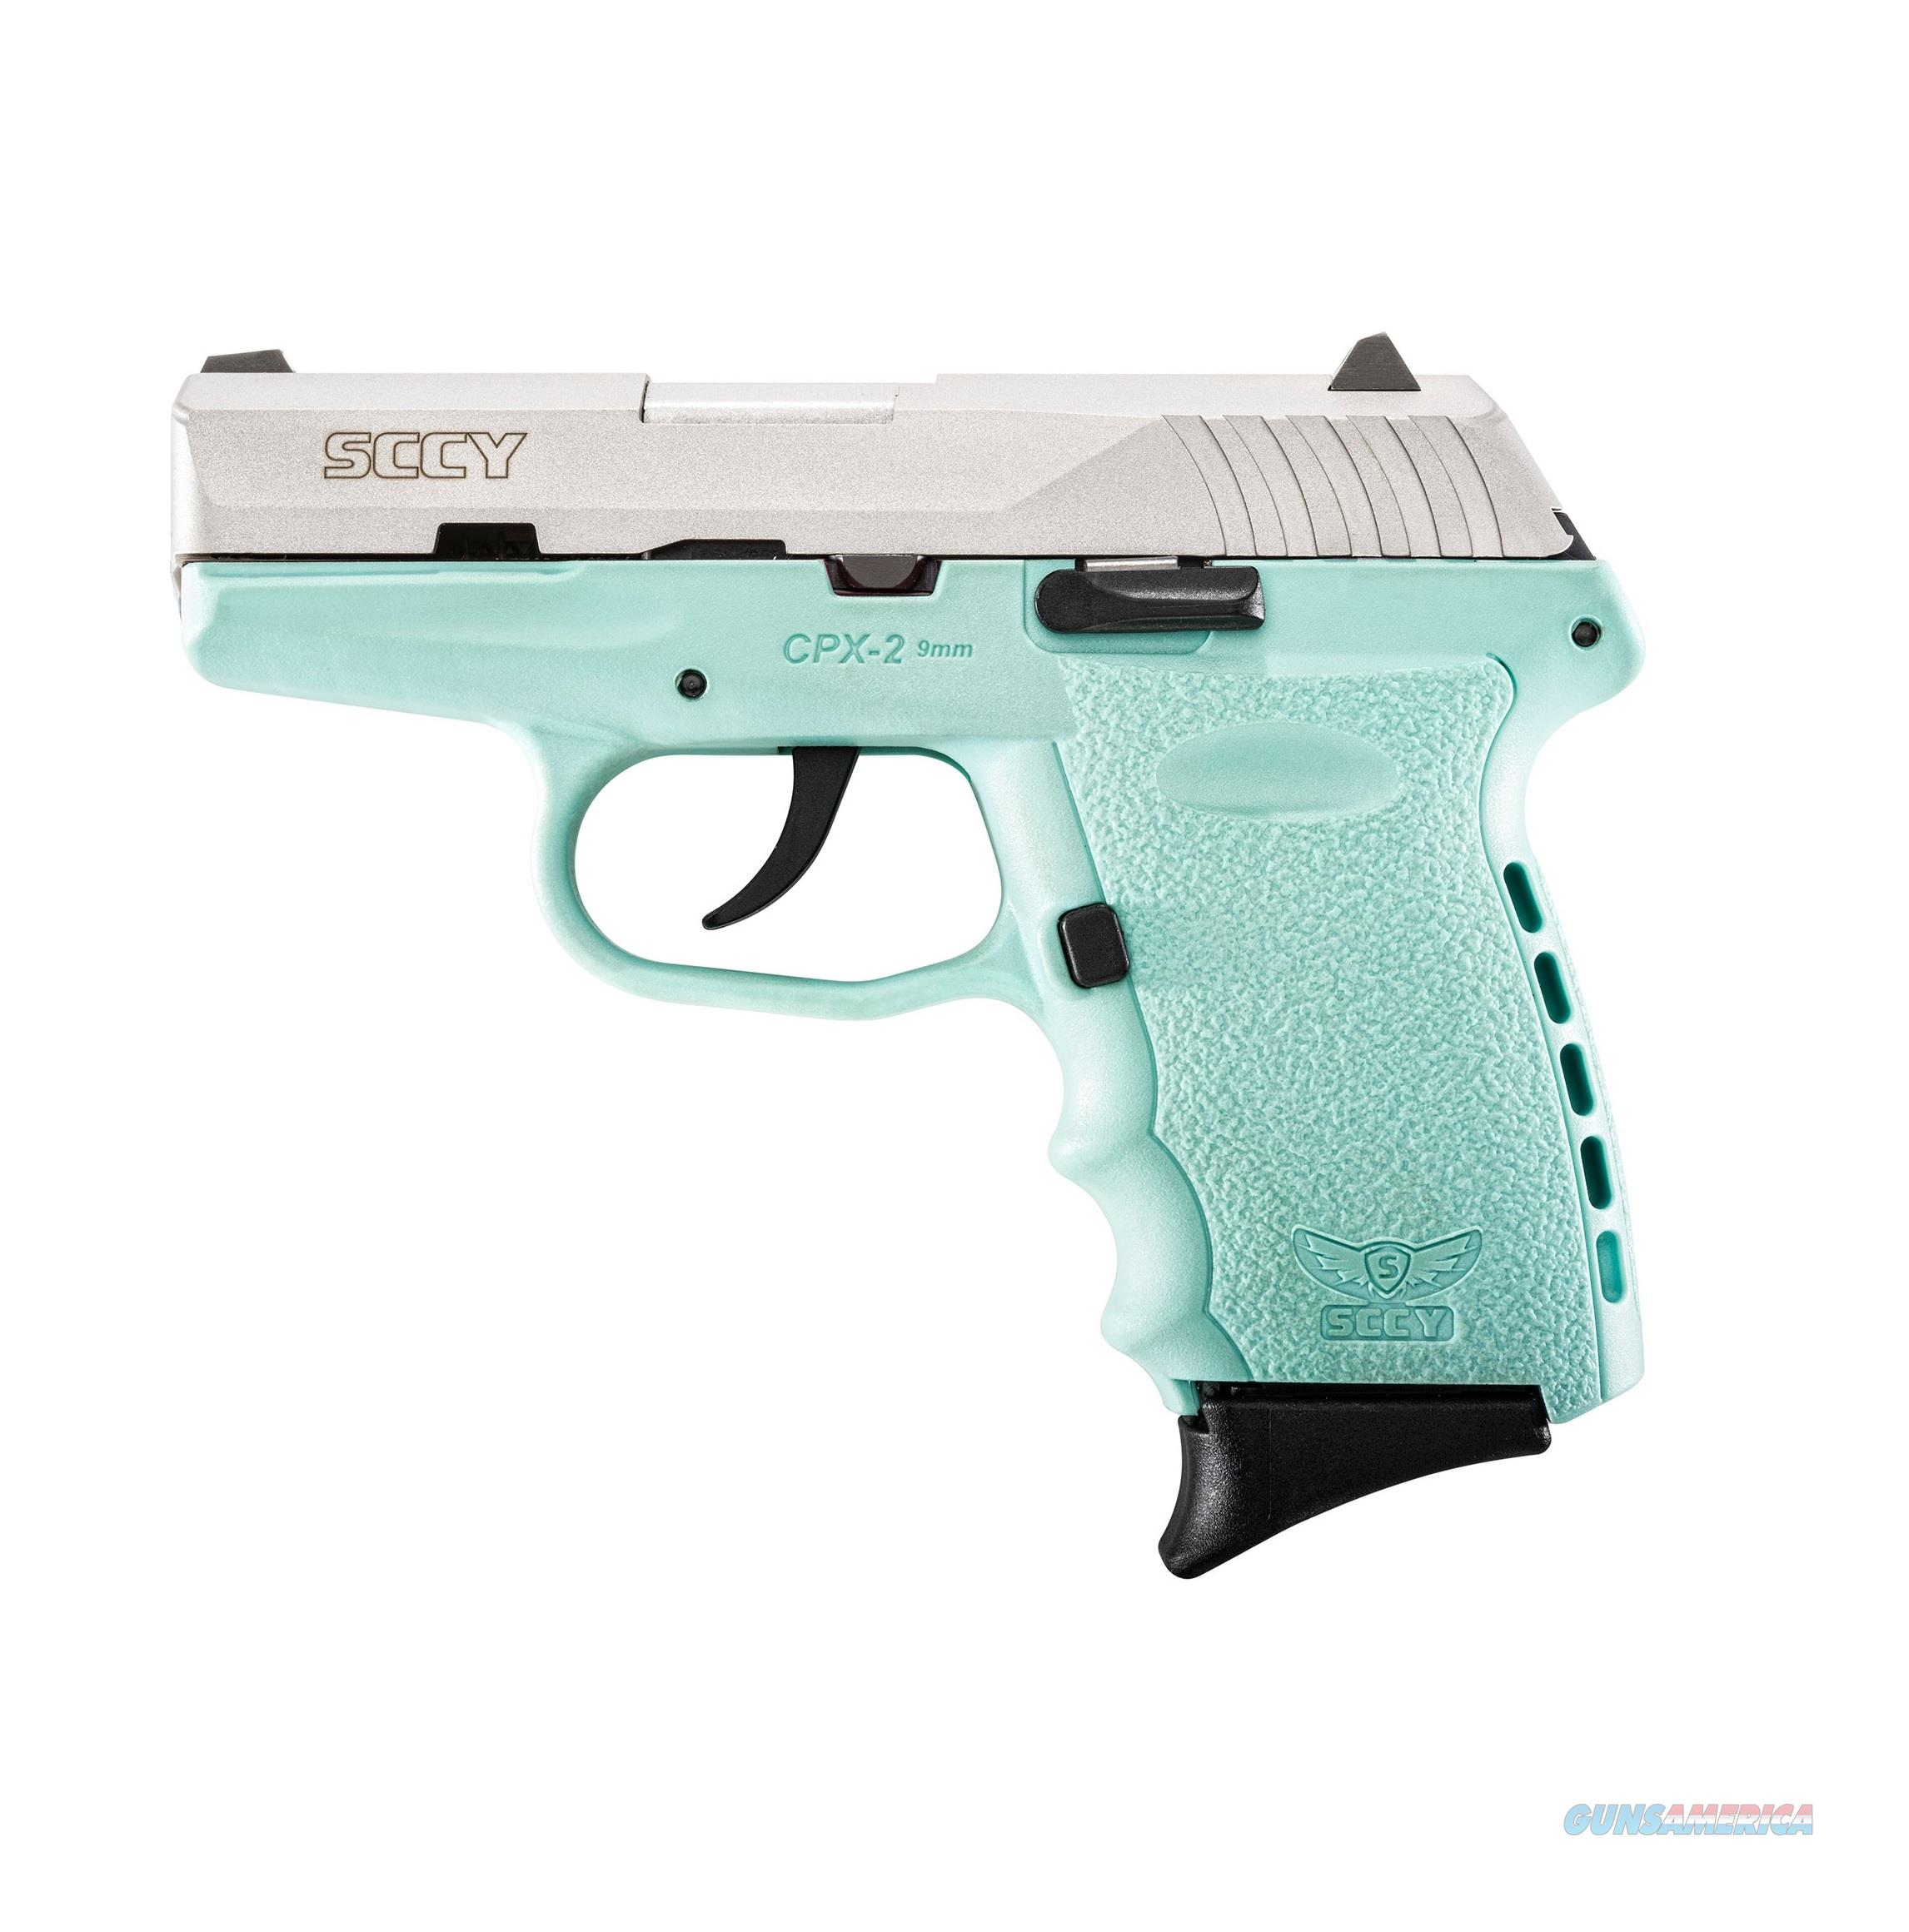 "SCCY CPX-2 9mm Satin SS/Blue 3.1"" CPX-2 TTSB   Guns > Pistols > SCCY Pistols > CPX2"